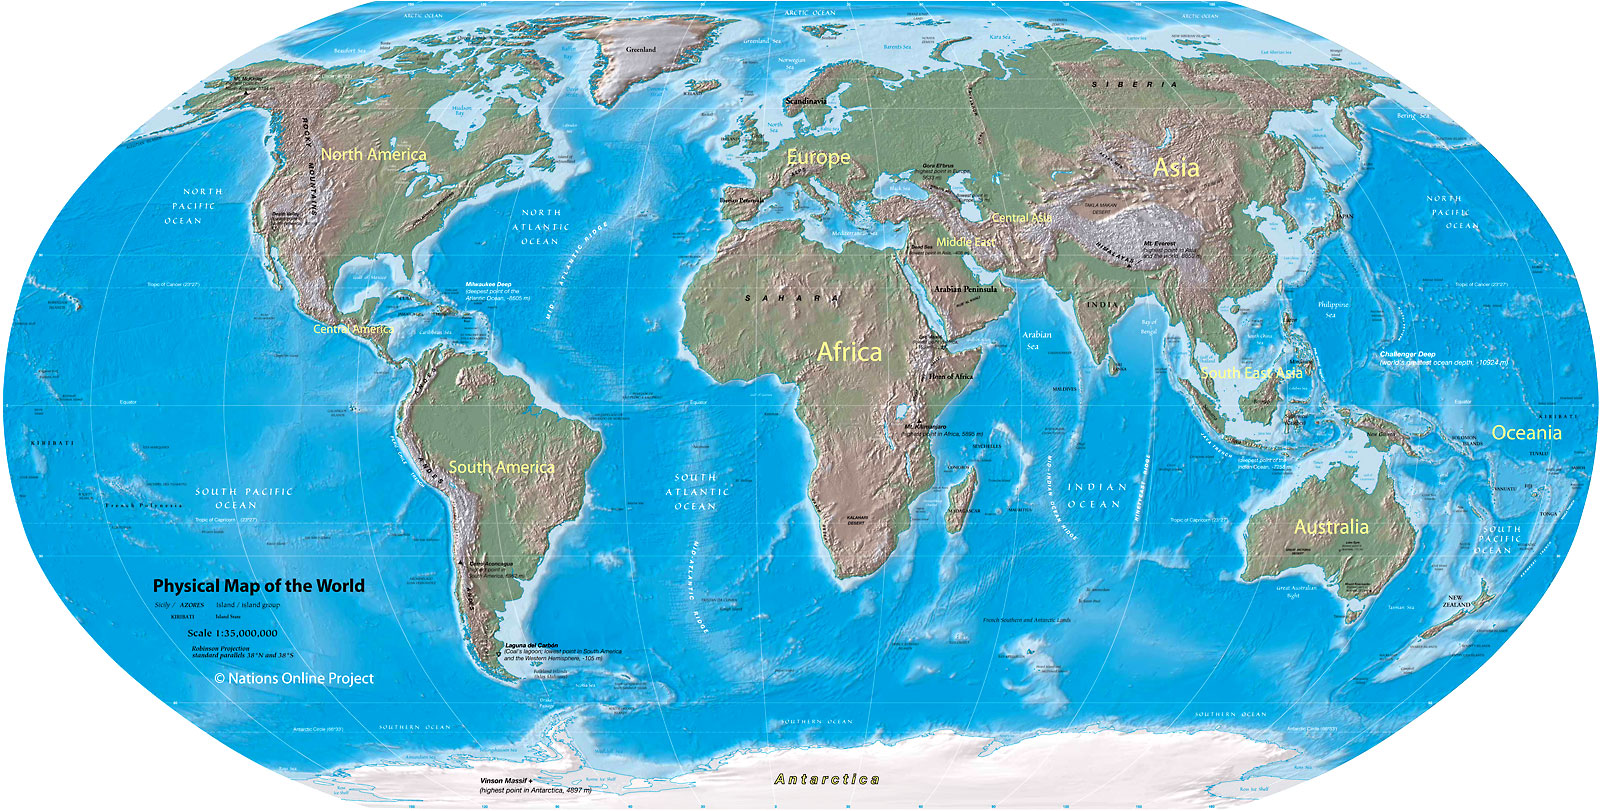 World map physical map of the world nations online project physical map of the world 1600px gumiabroncs